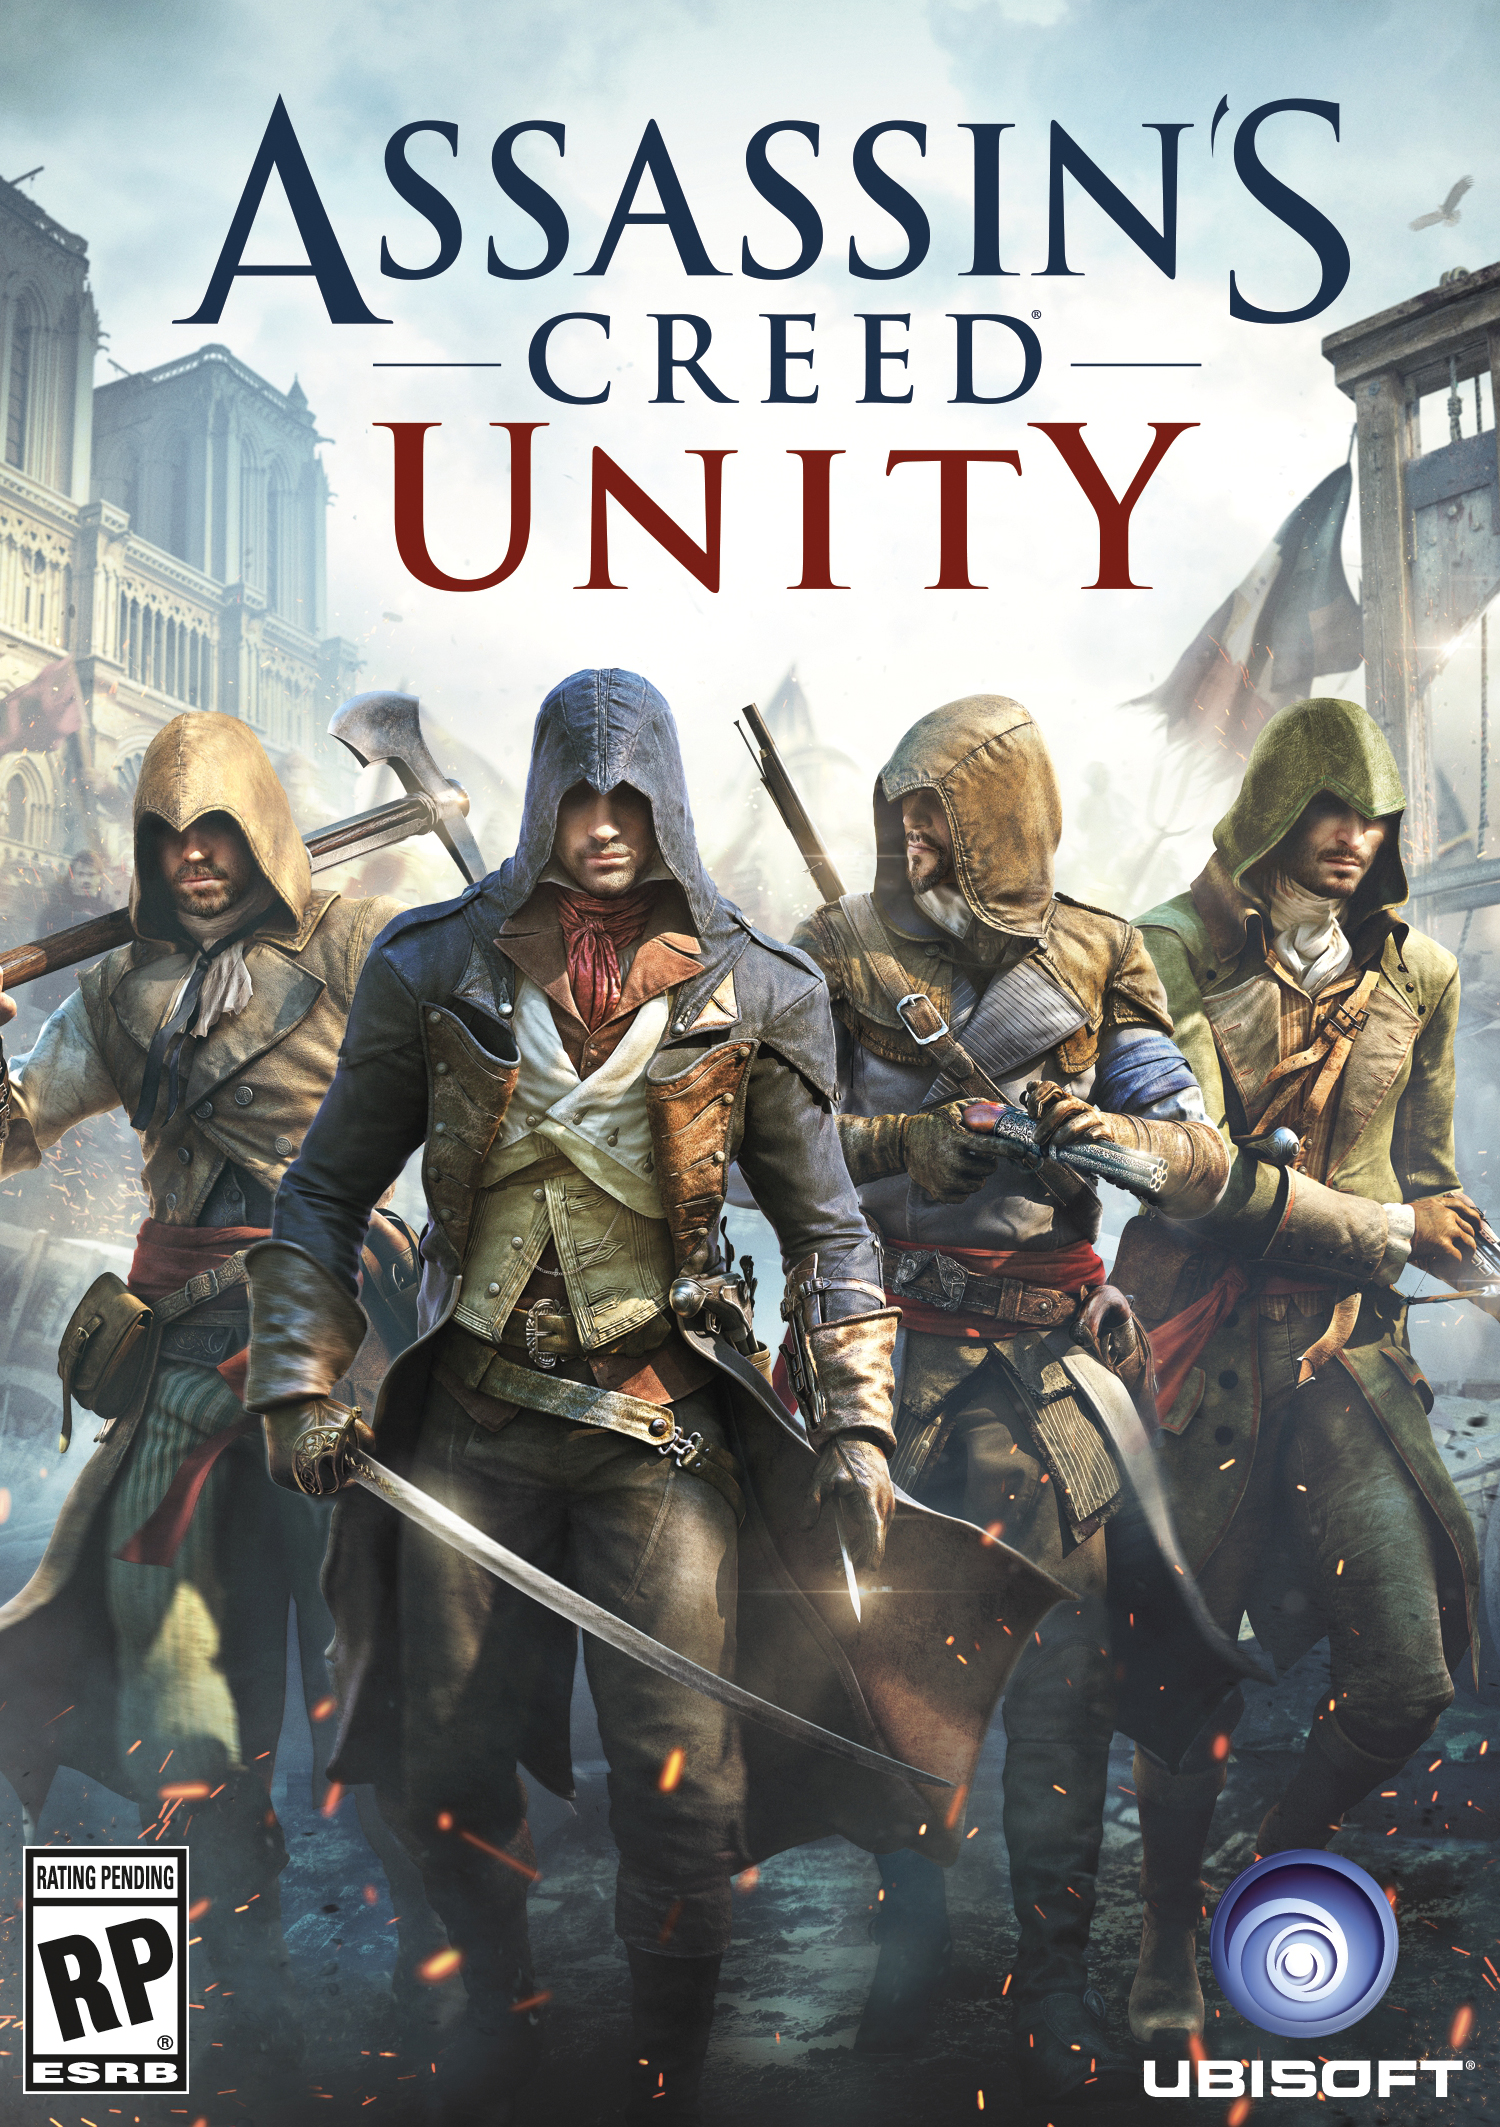 http://img3.wikia.nocookie.net/__cb20140610053215/assassinscreed/images/0/0b/Assassin%27s_Creed_Unity_Cover.jpg